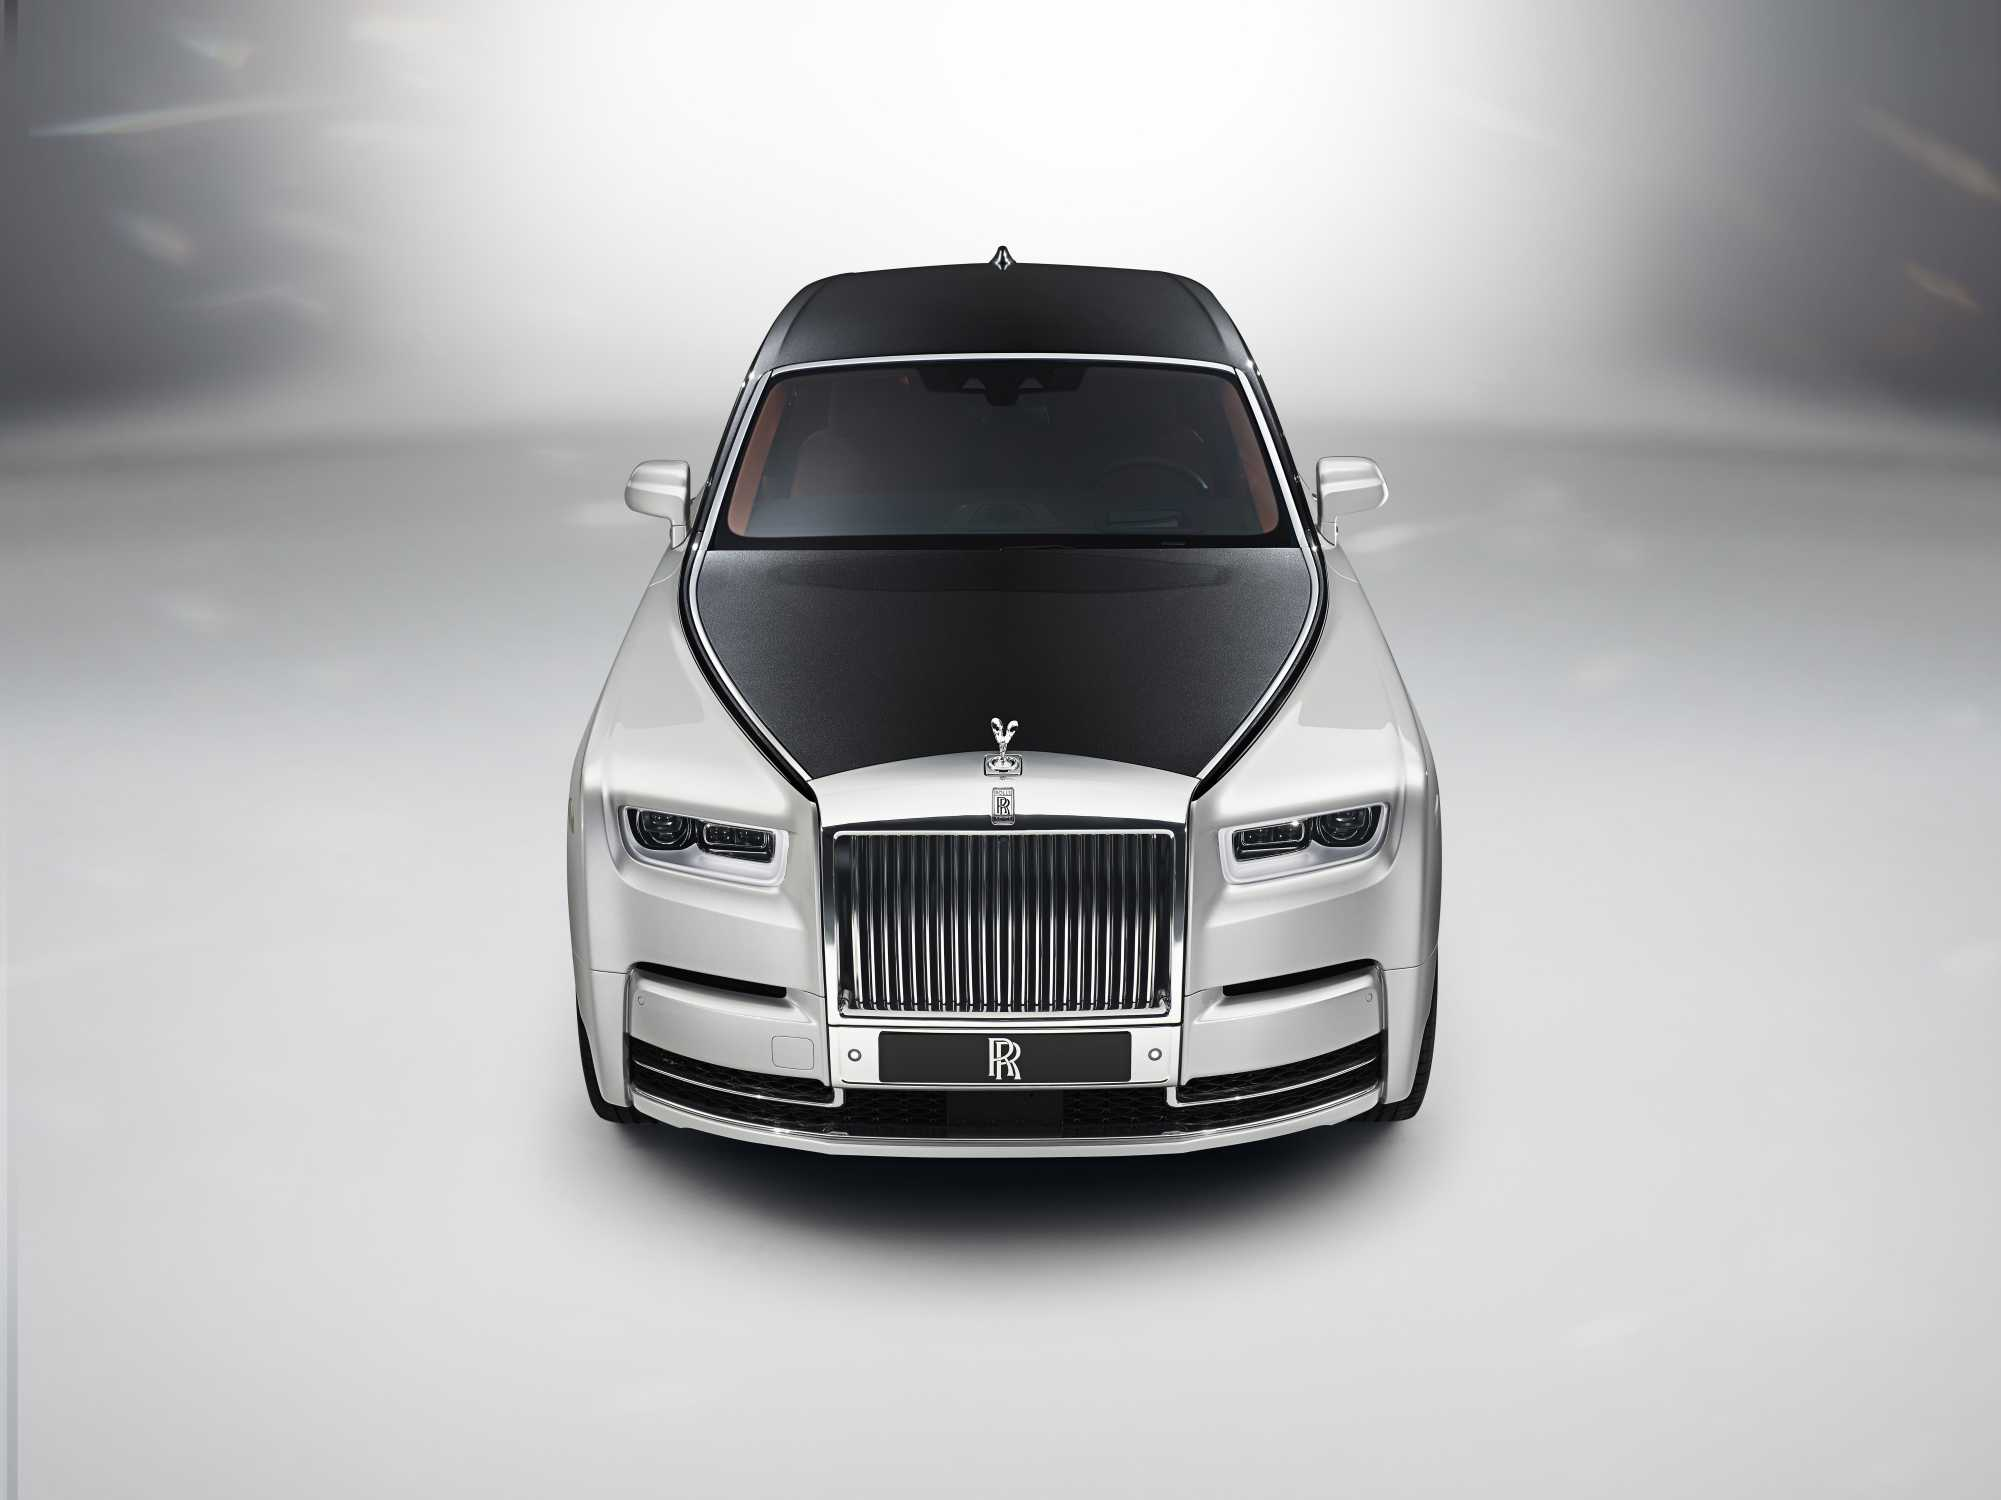 How to fulfill your desire of driving a Rolls Royce